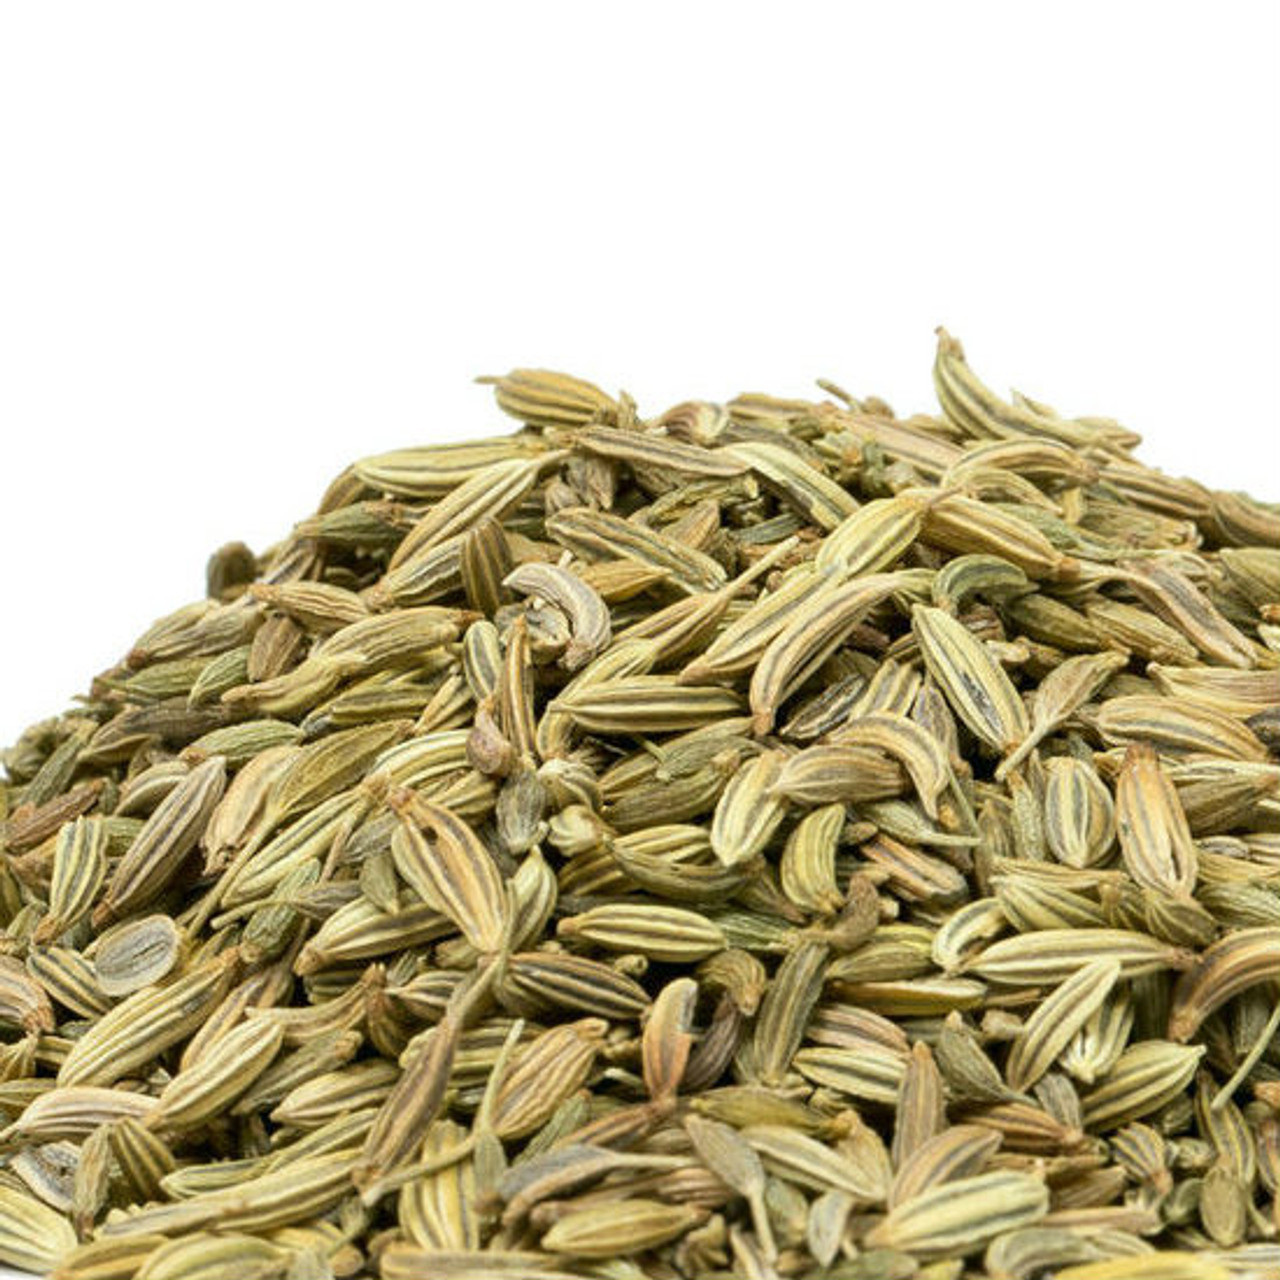 Anise Seeds : Substitutes, Ingredients, Equivalents ... for Beginners